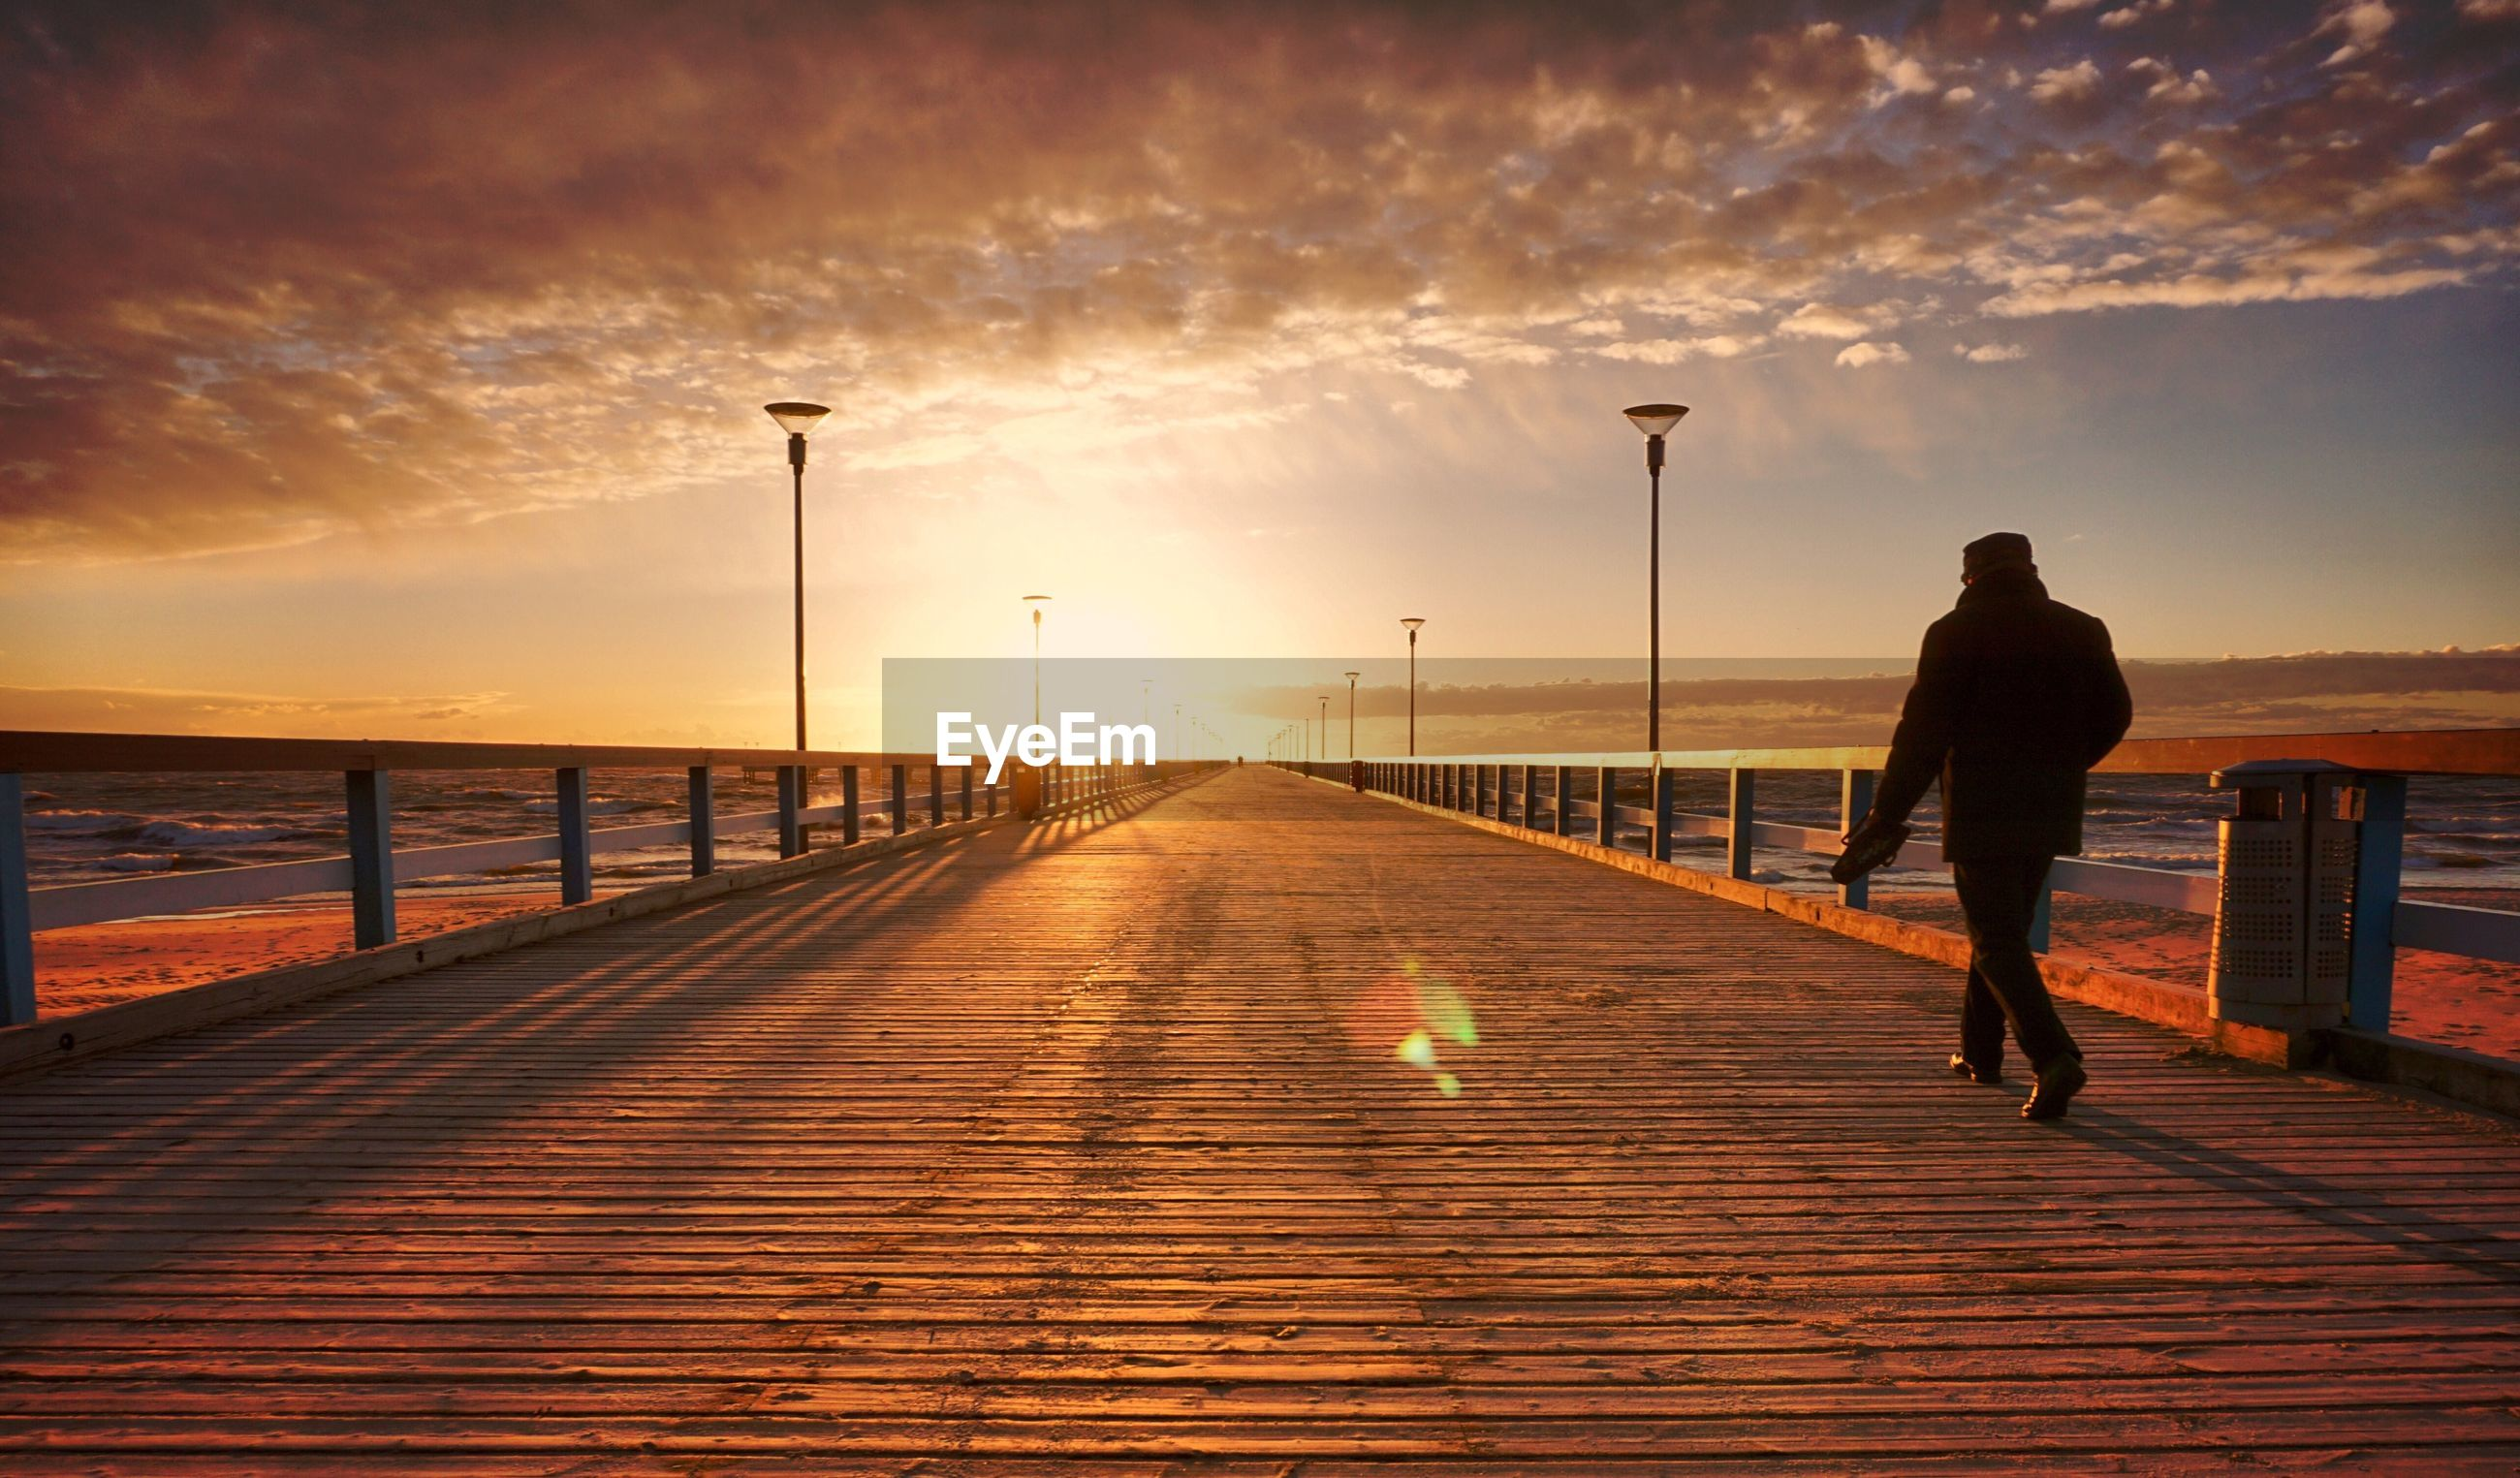 Rear view of silhouette man walking on pier against cloudy sky during sunset